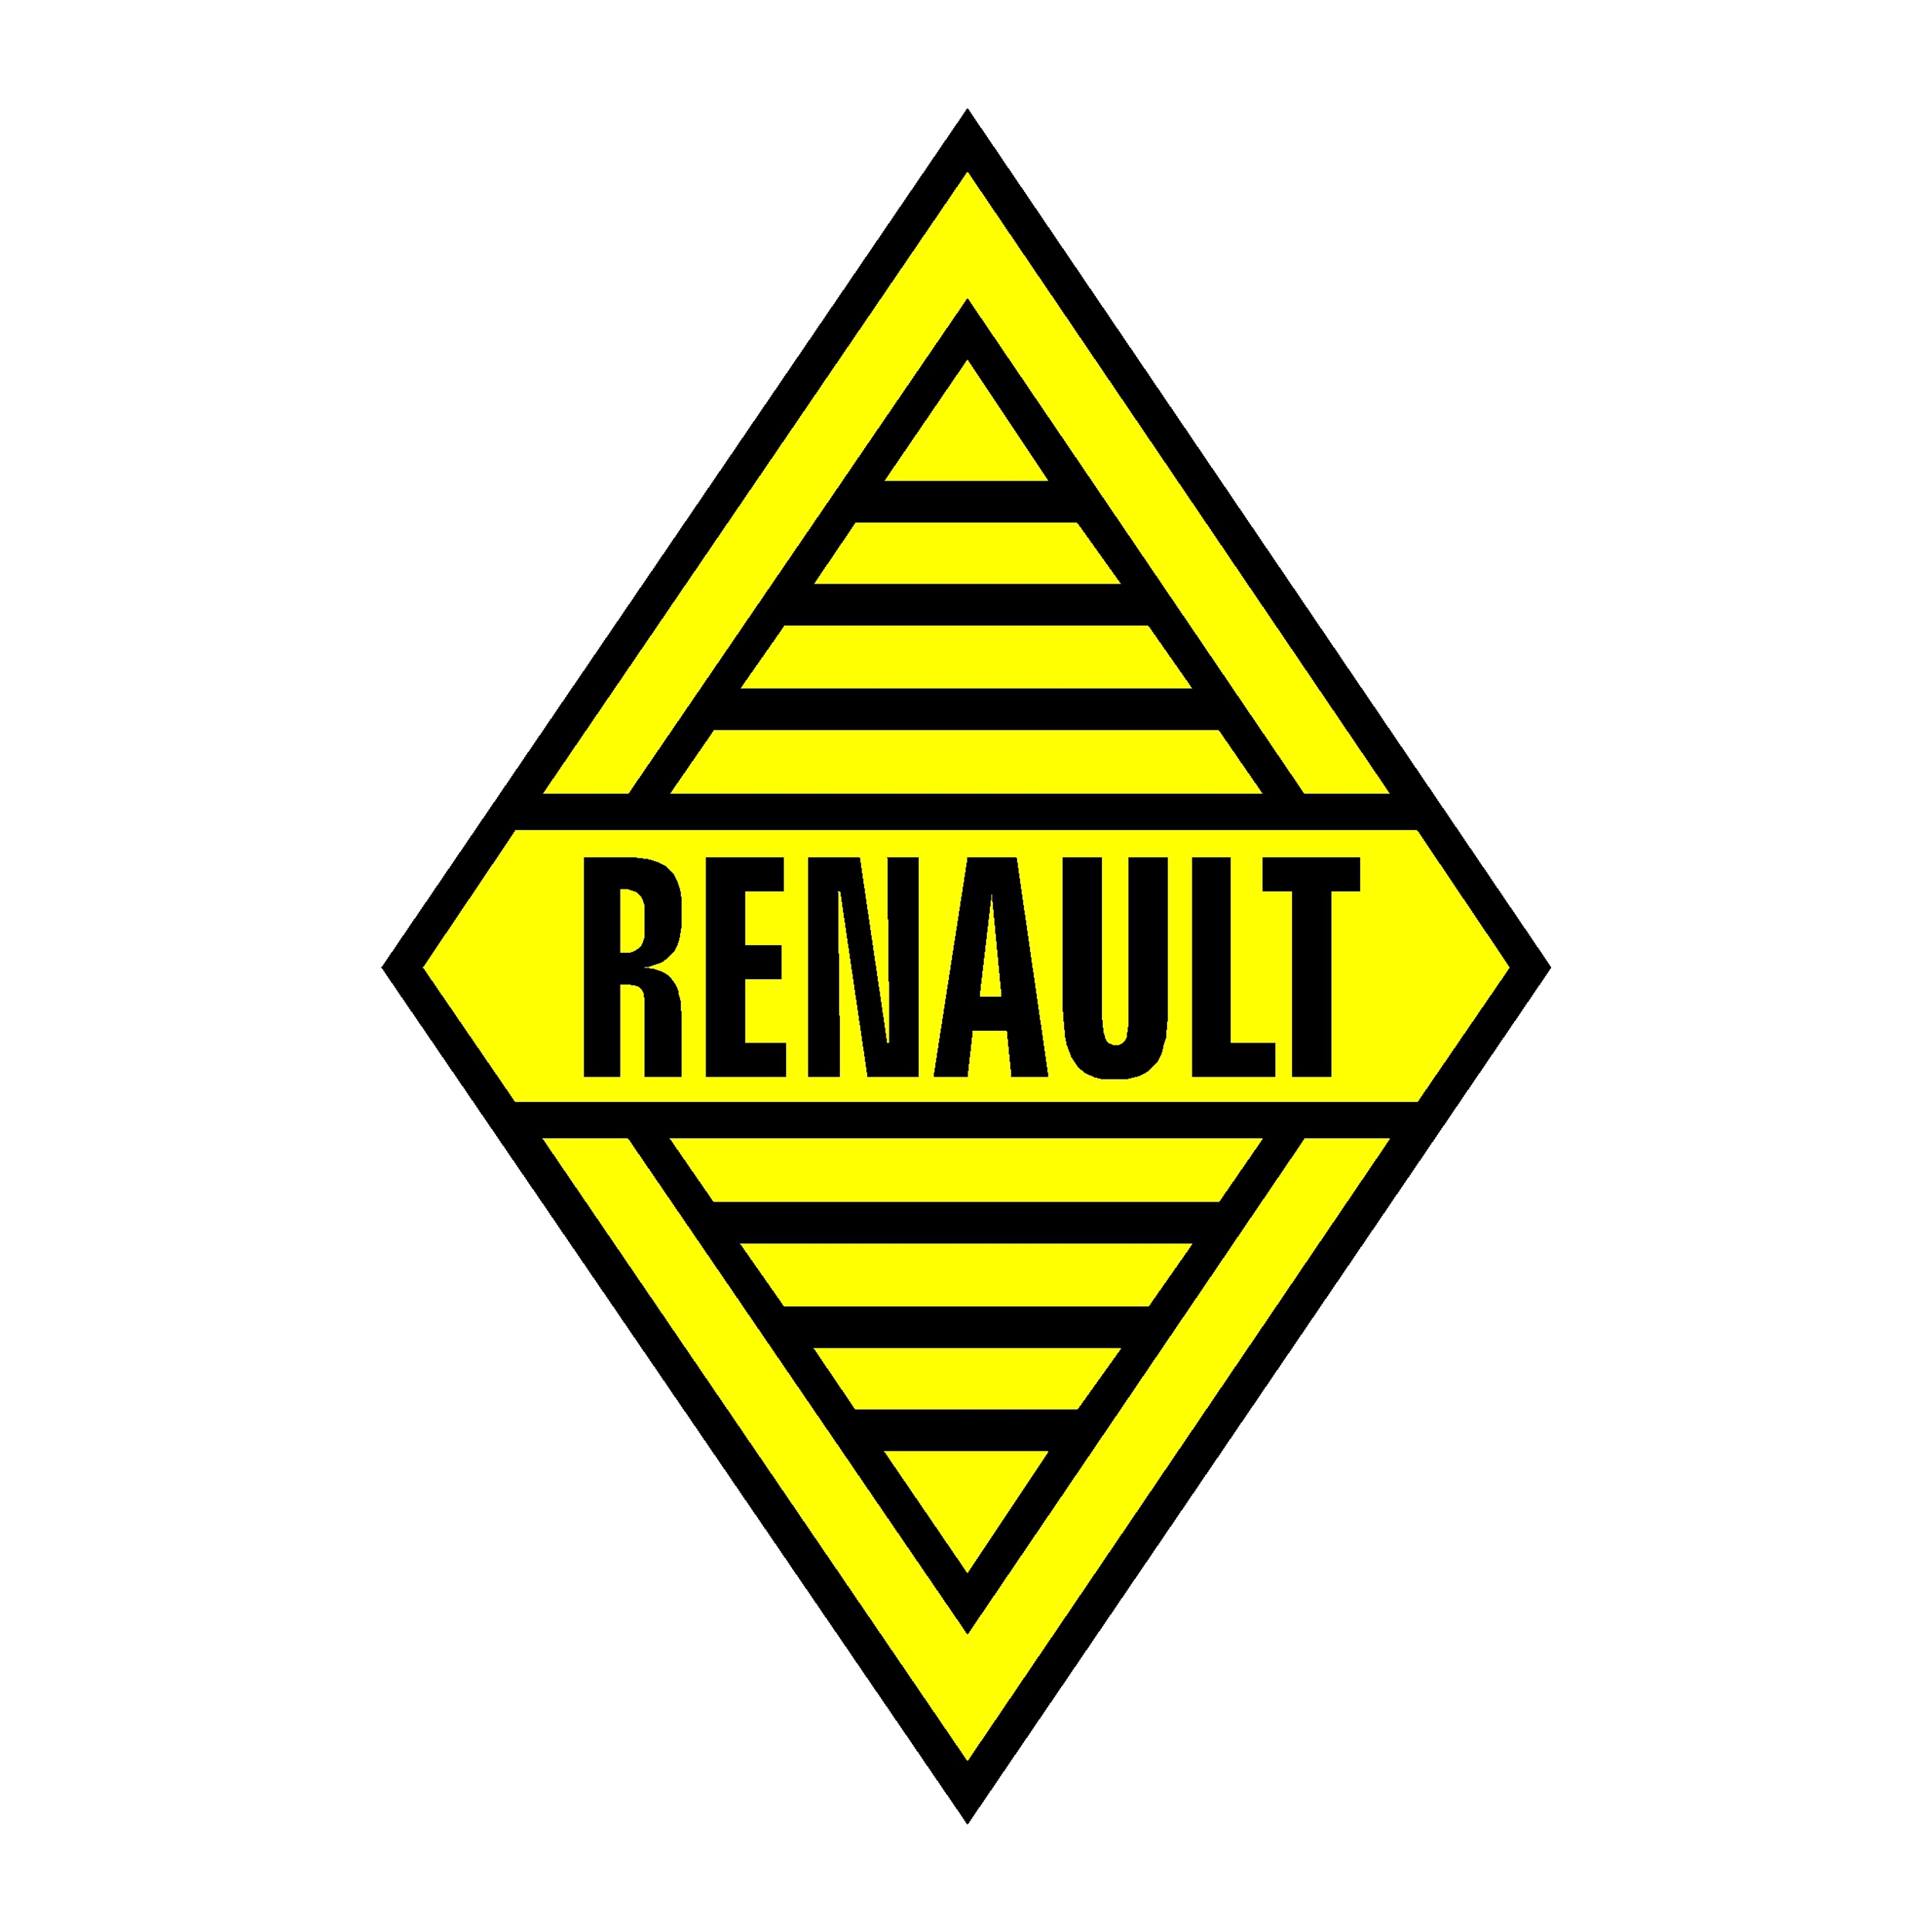 stickers renault old logo voitures premstick. Black Bedroom Furniture Sets. Home Design Ideas